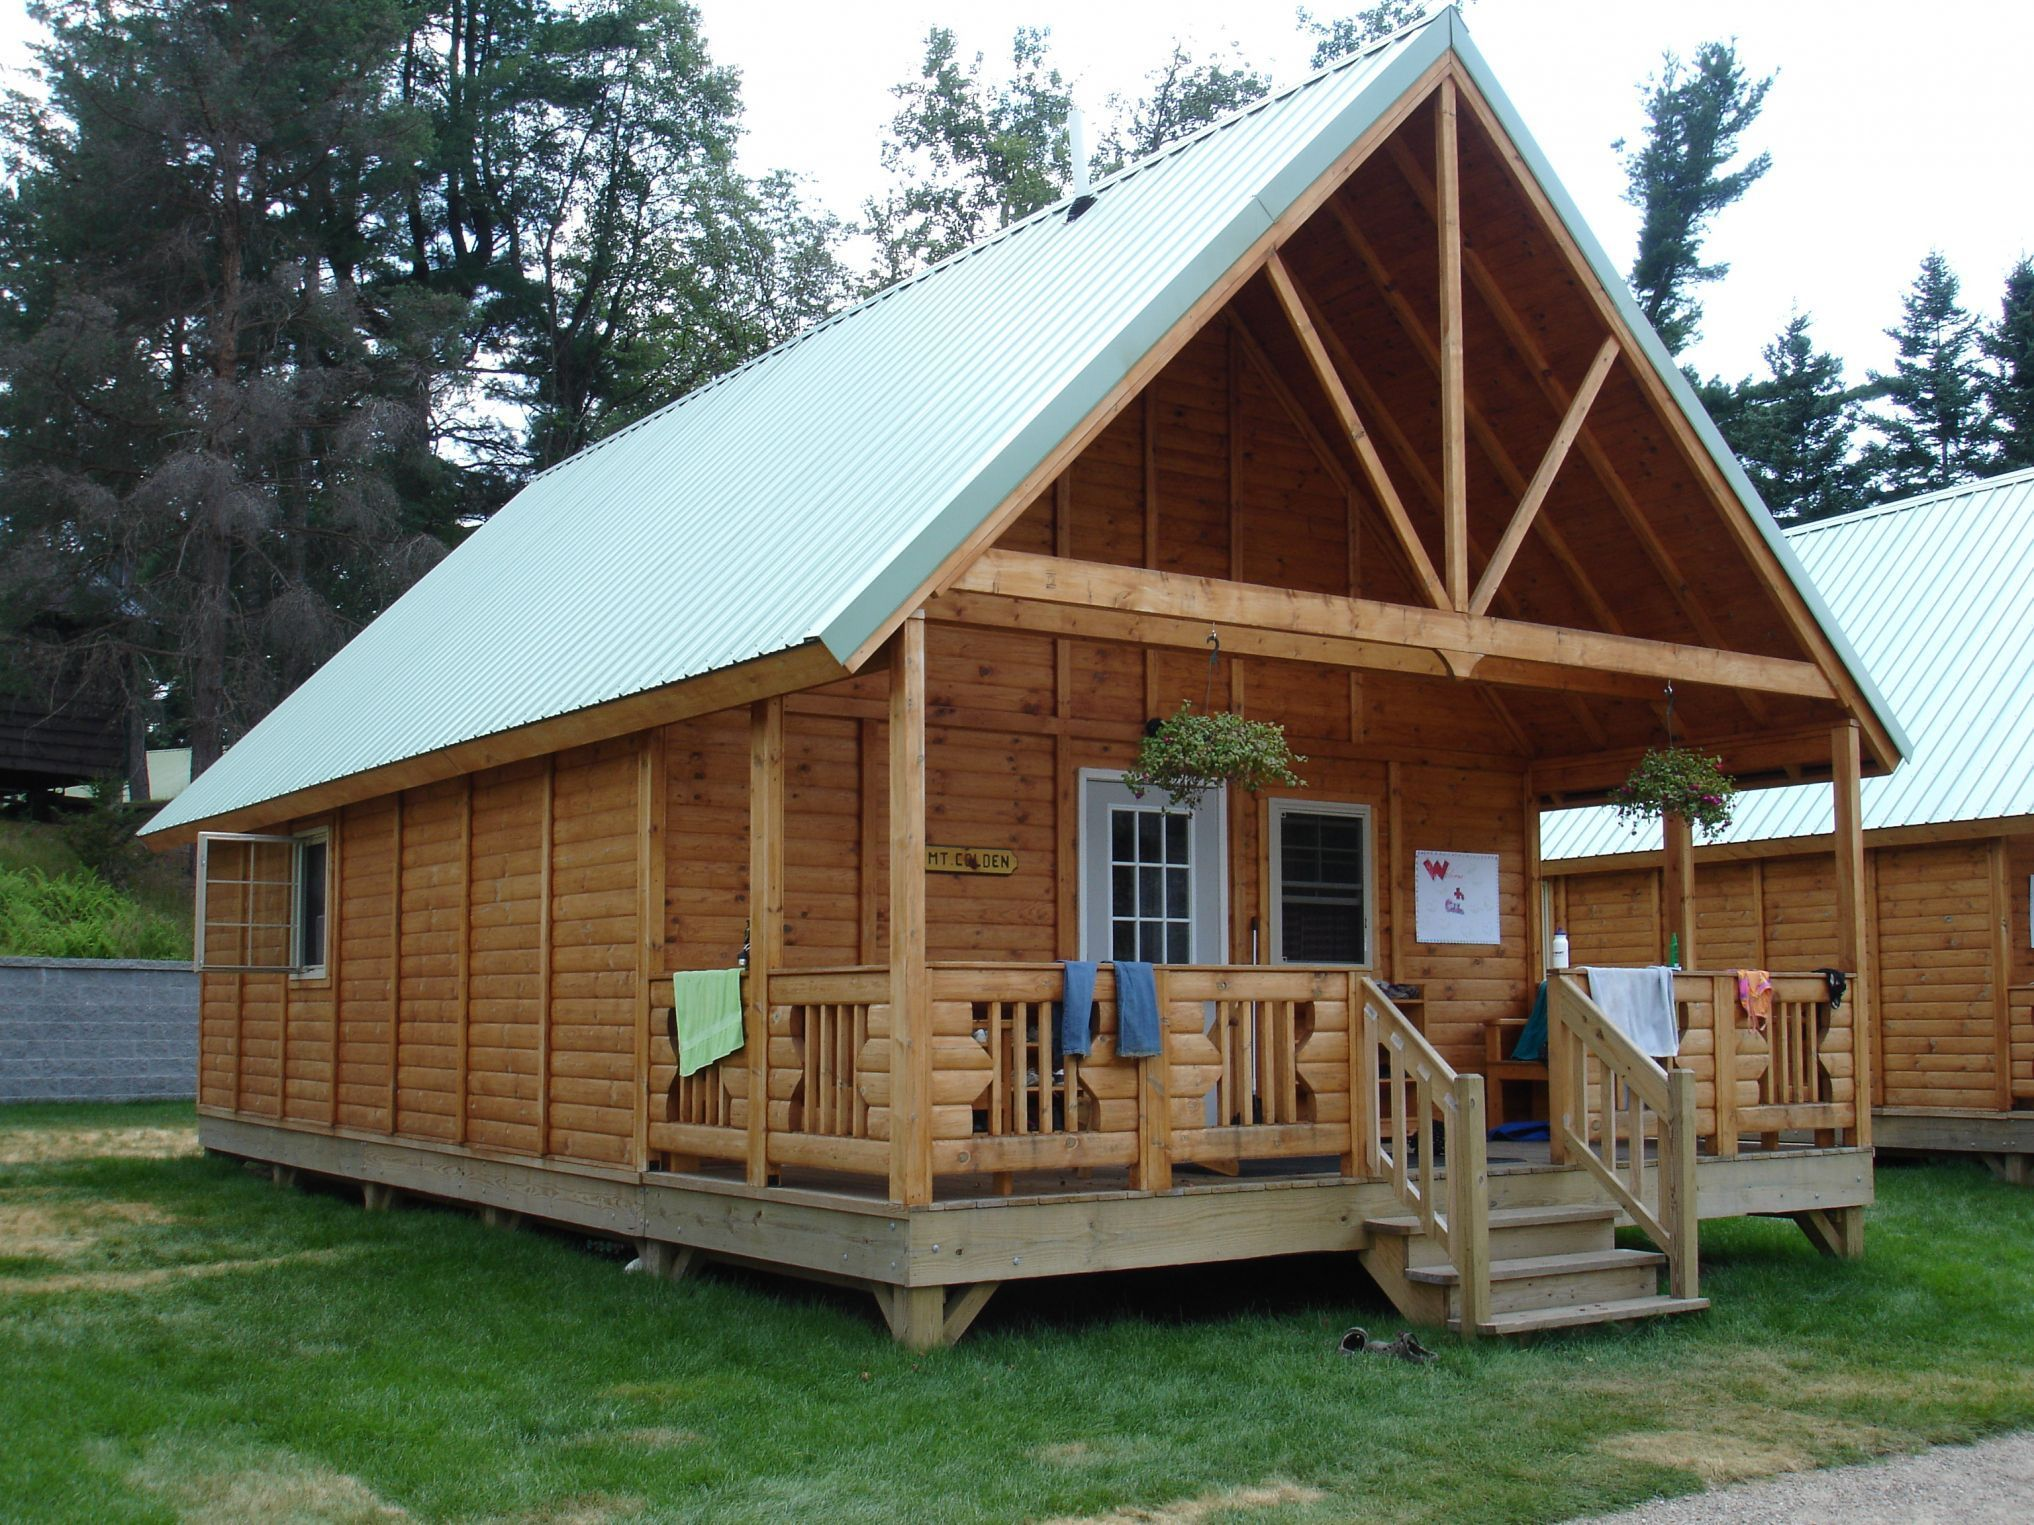 Designing Your Tiny Home Is Very Easy With These Simple Plan See What You Need To Know To Get Start Small Log Cabin Small Log Cabin Kits Prefabricated Cabins